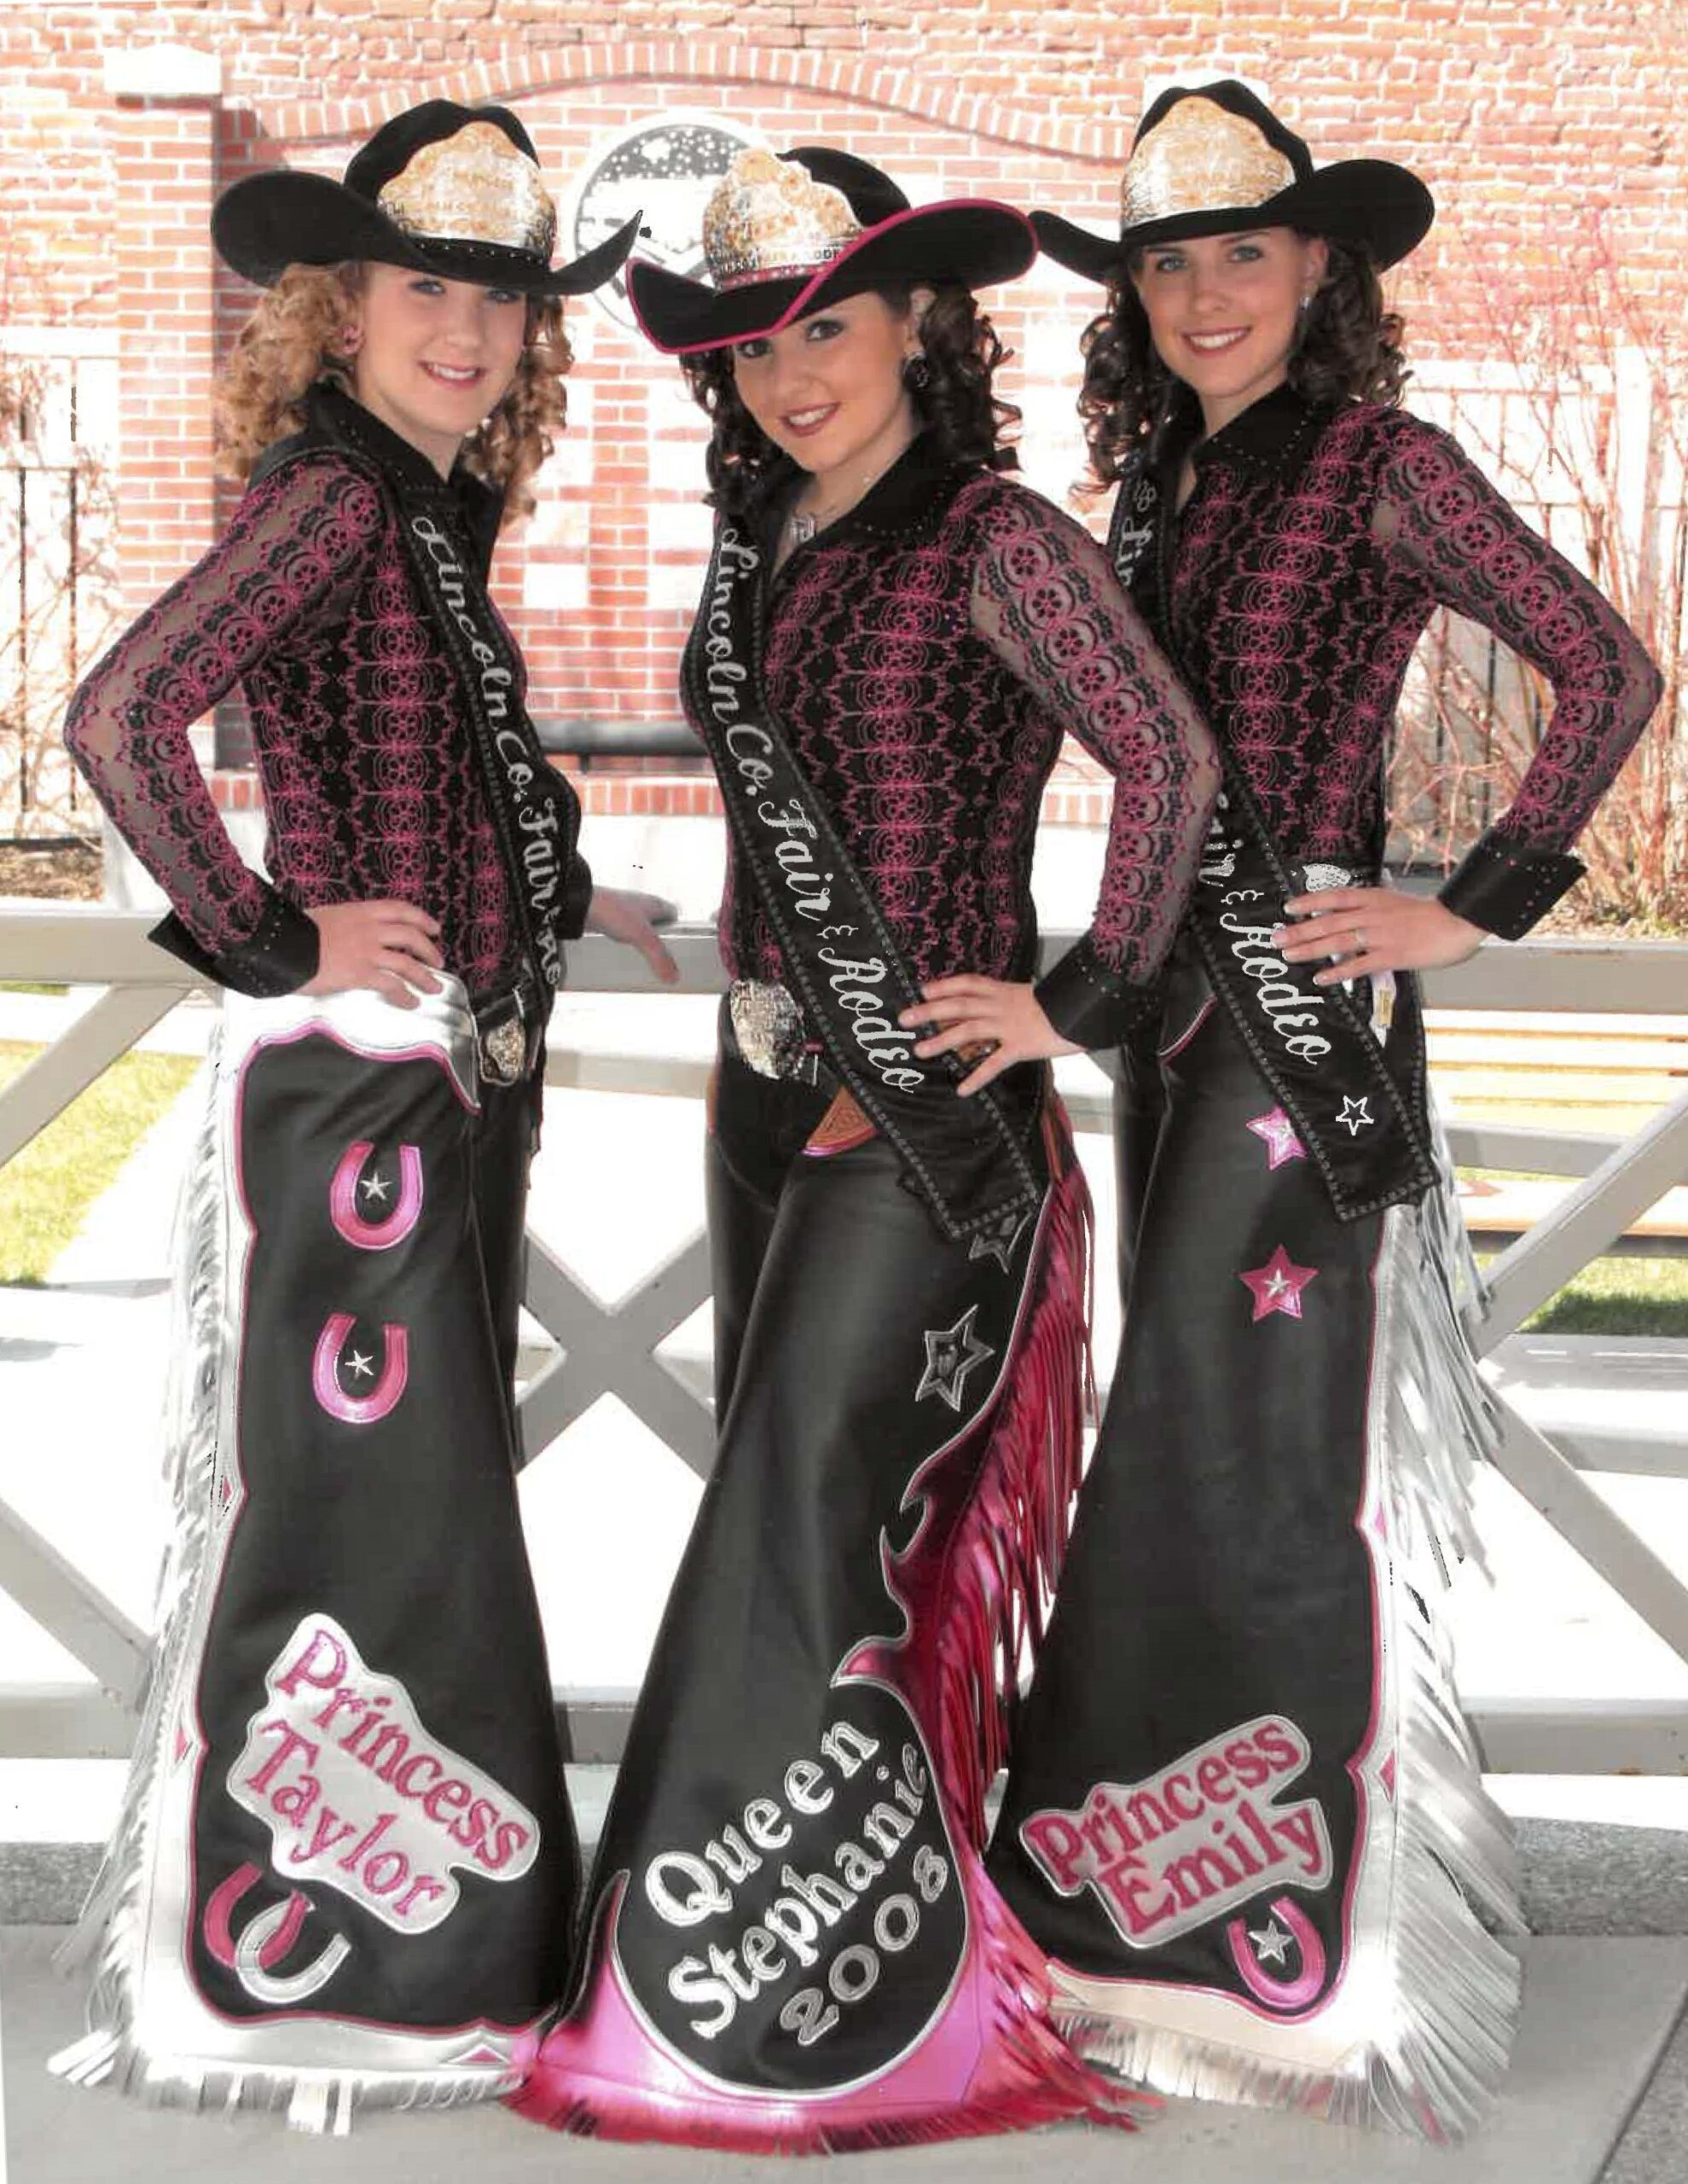 2008 Lincoln County Fair & Rodeo Royalty